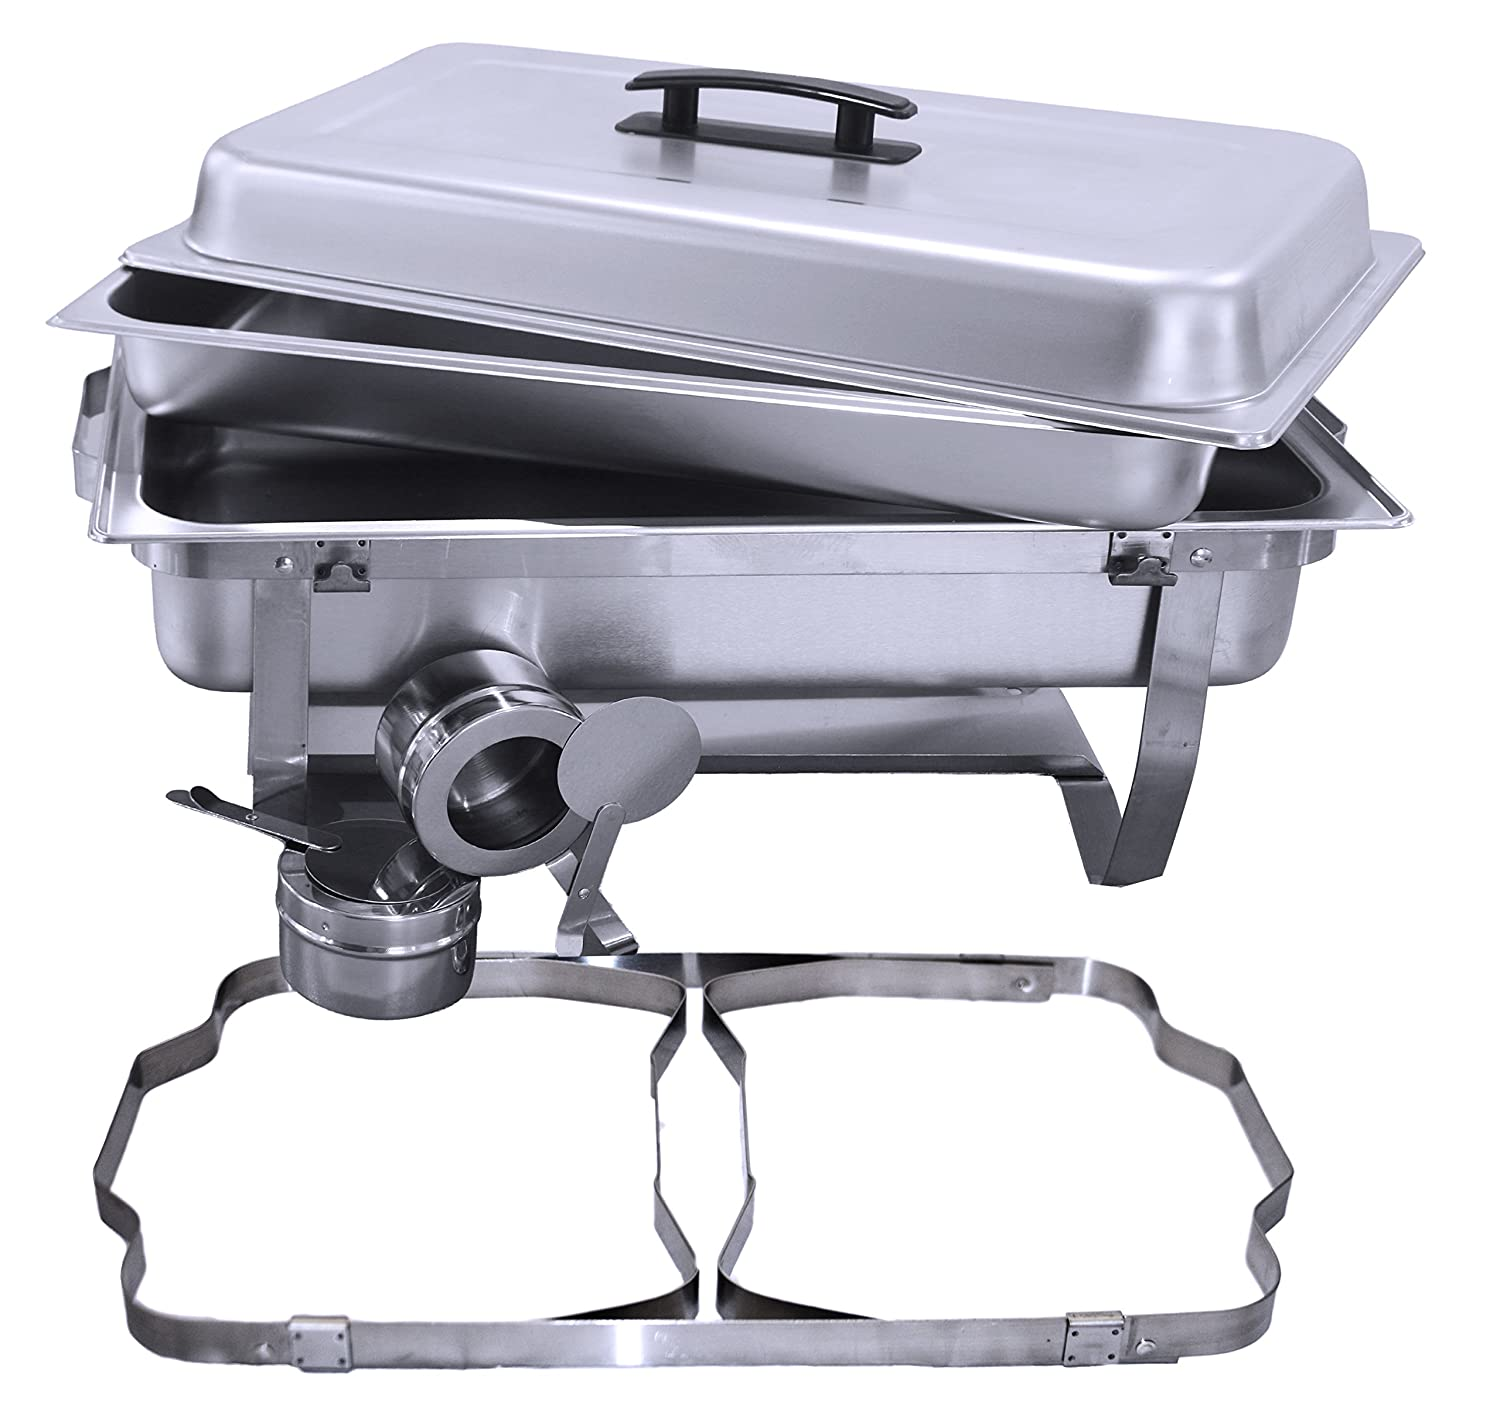 Tiger Chef 8 Quart Full Size Stainless Steel Chafer with Folding Frame and Cool-Touch Plastic on Top 3, Full Size with 1 2 Inserts